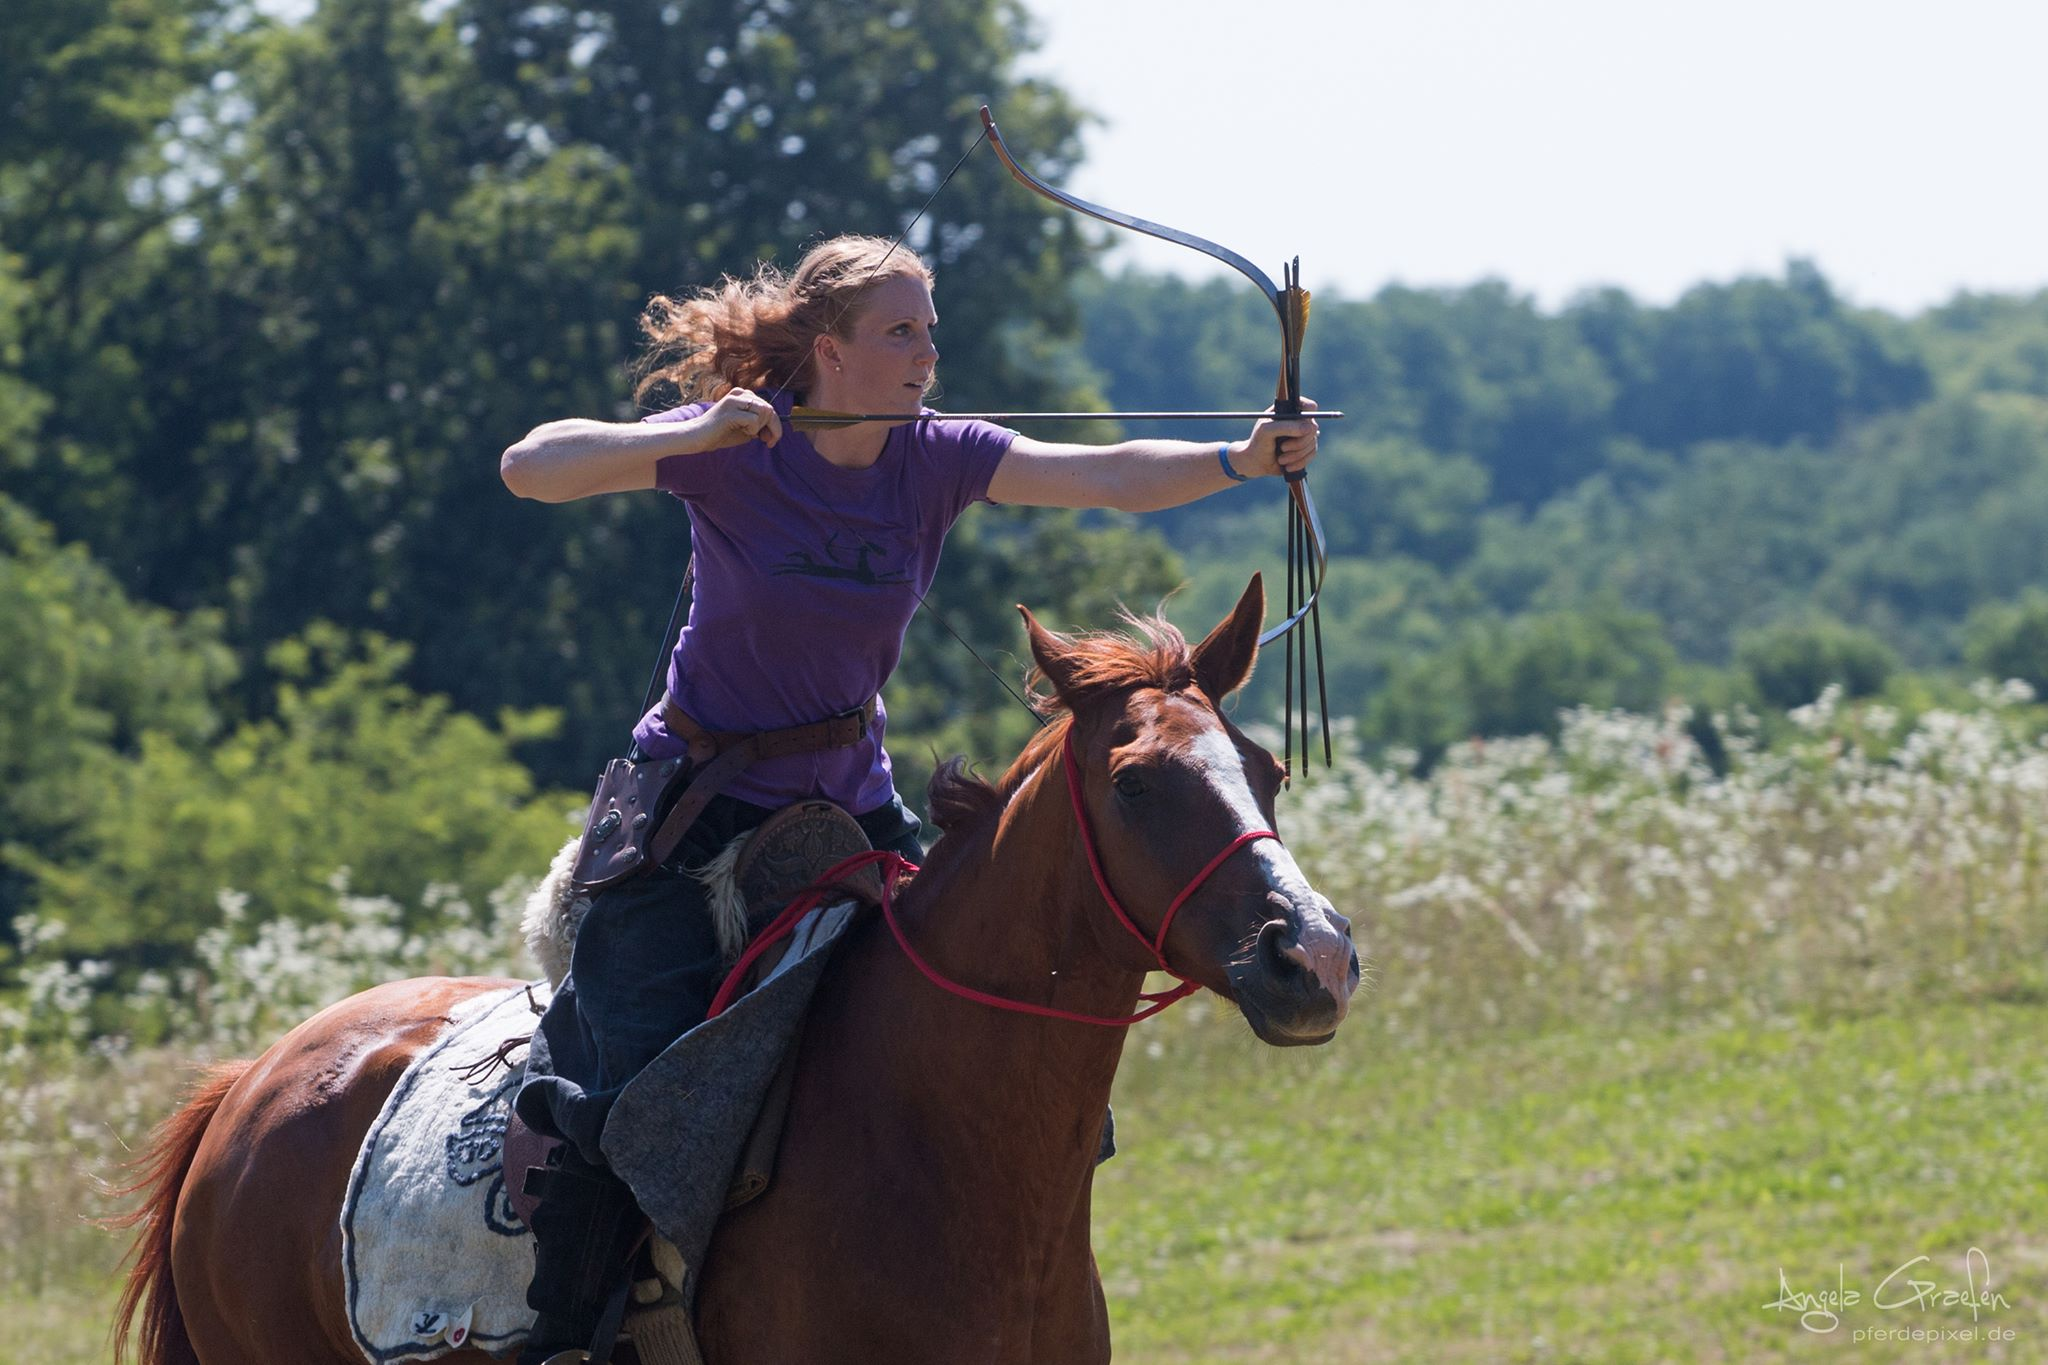 Mounted Archery, Horse Training, Riding Lessons, and Archery Lessons!